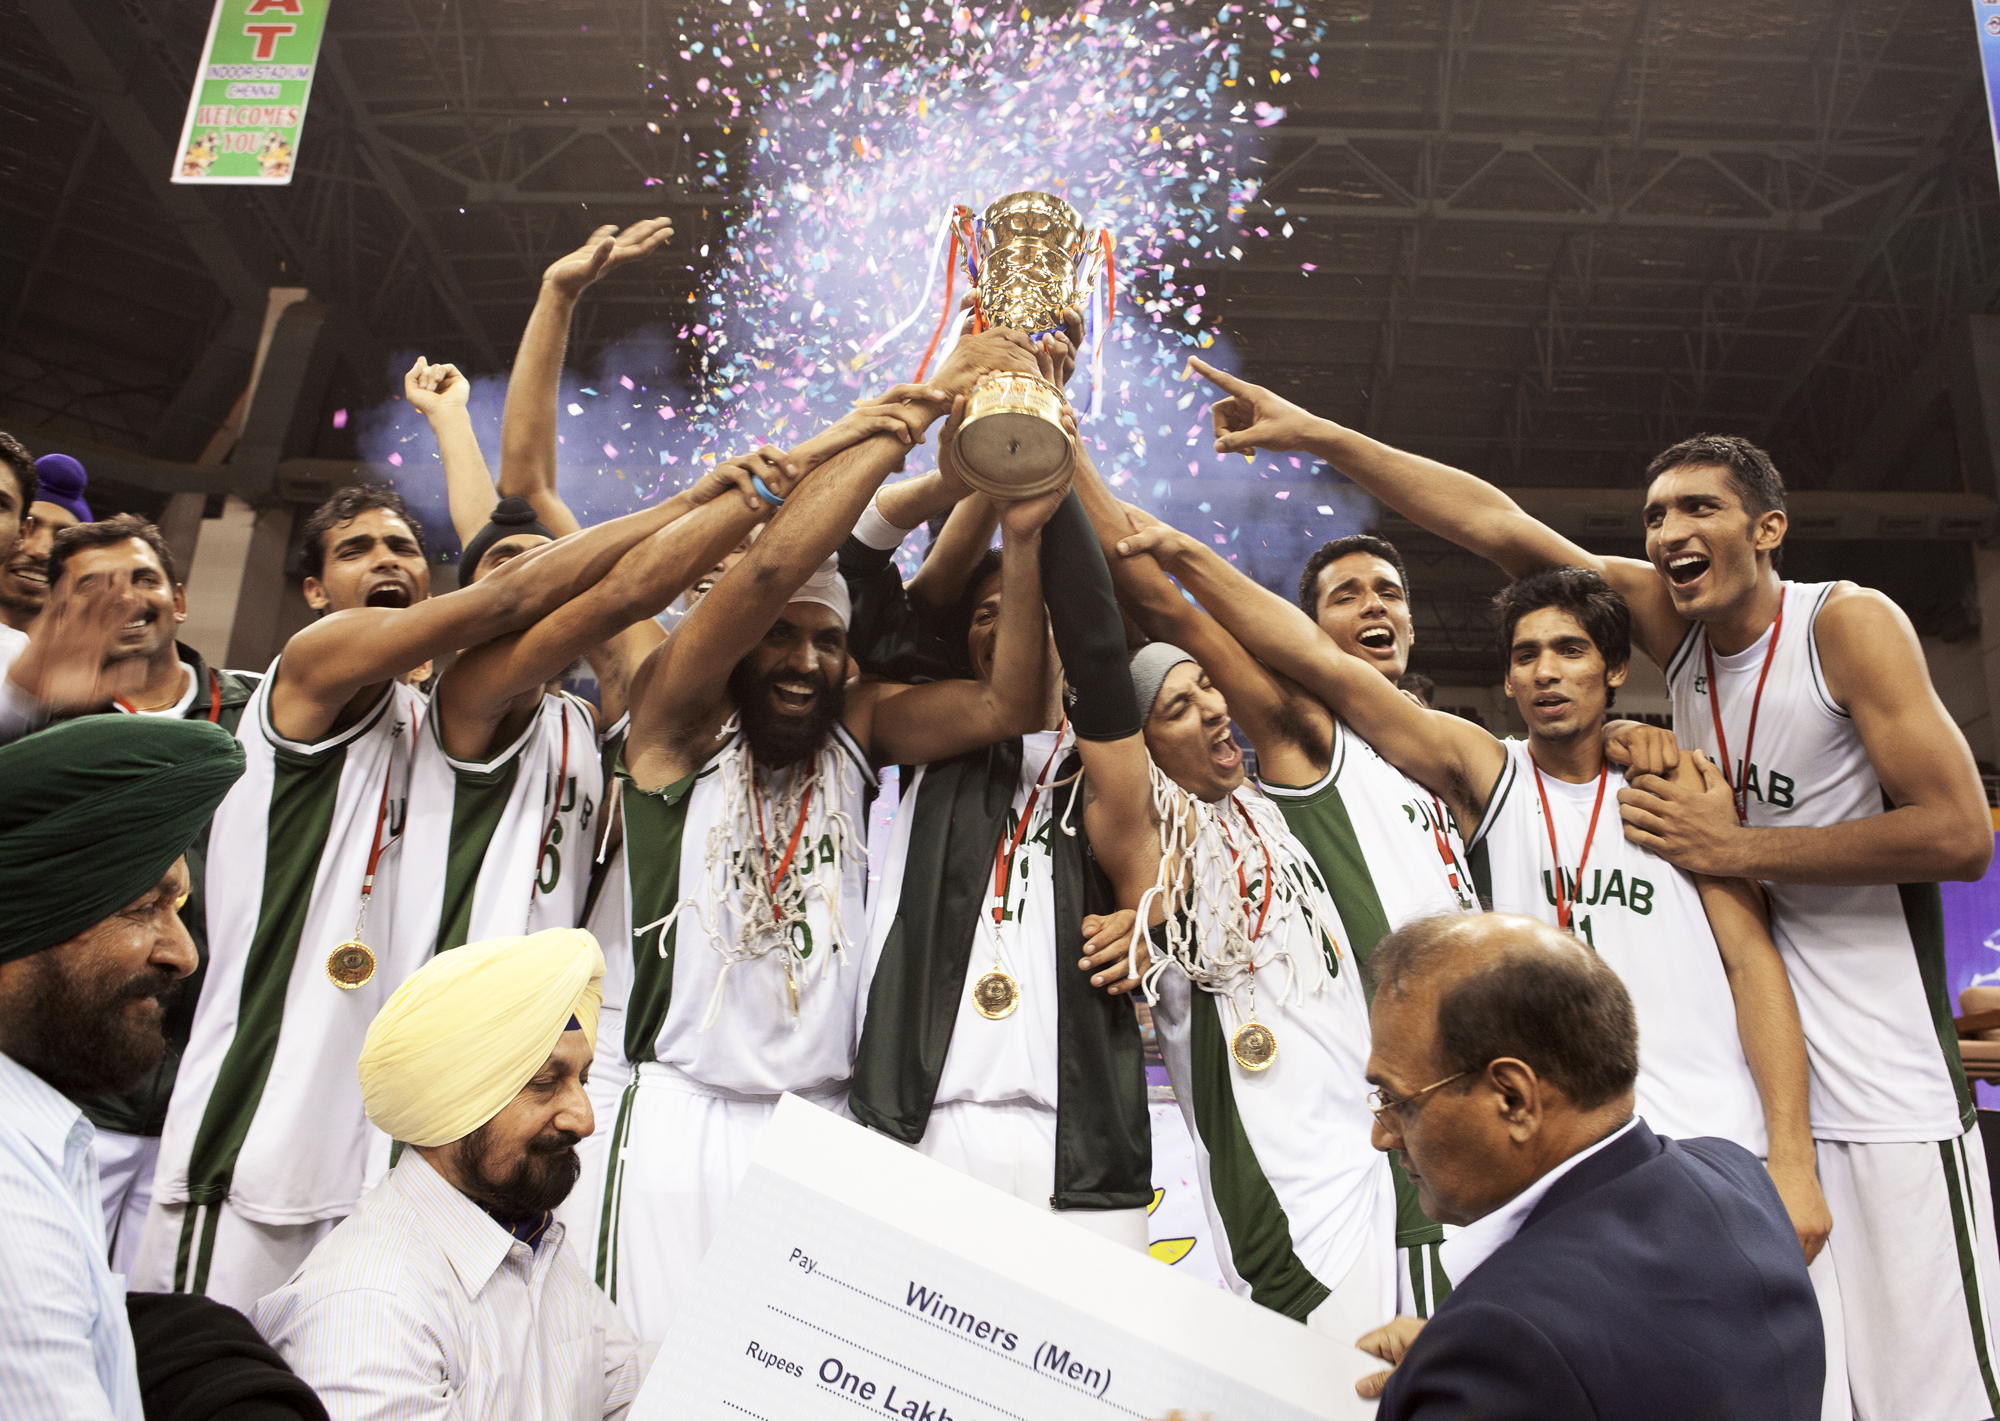 Punjab team hoisting the trophy after winning the  62nd Senior National Basketball Championship. Chennai, 2011.